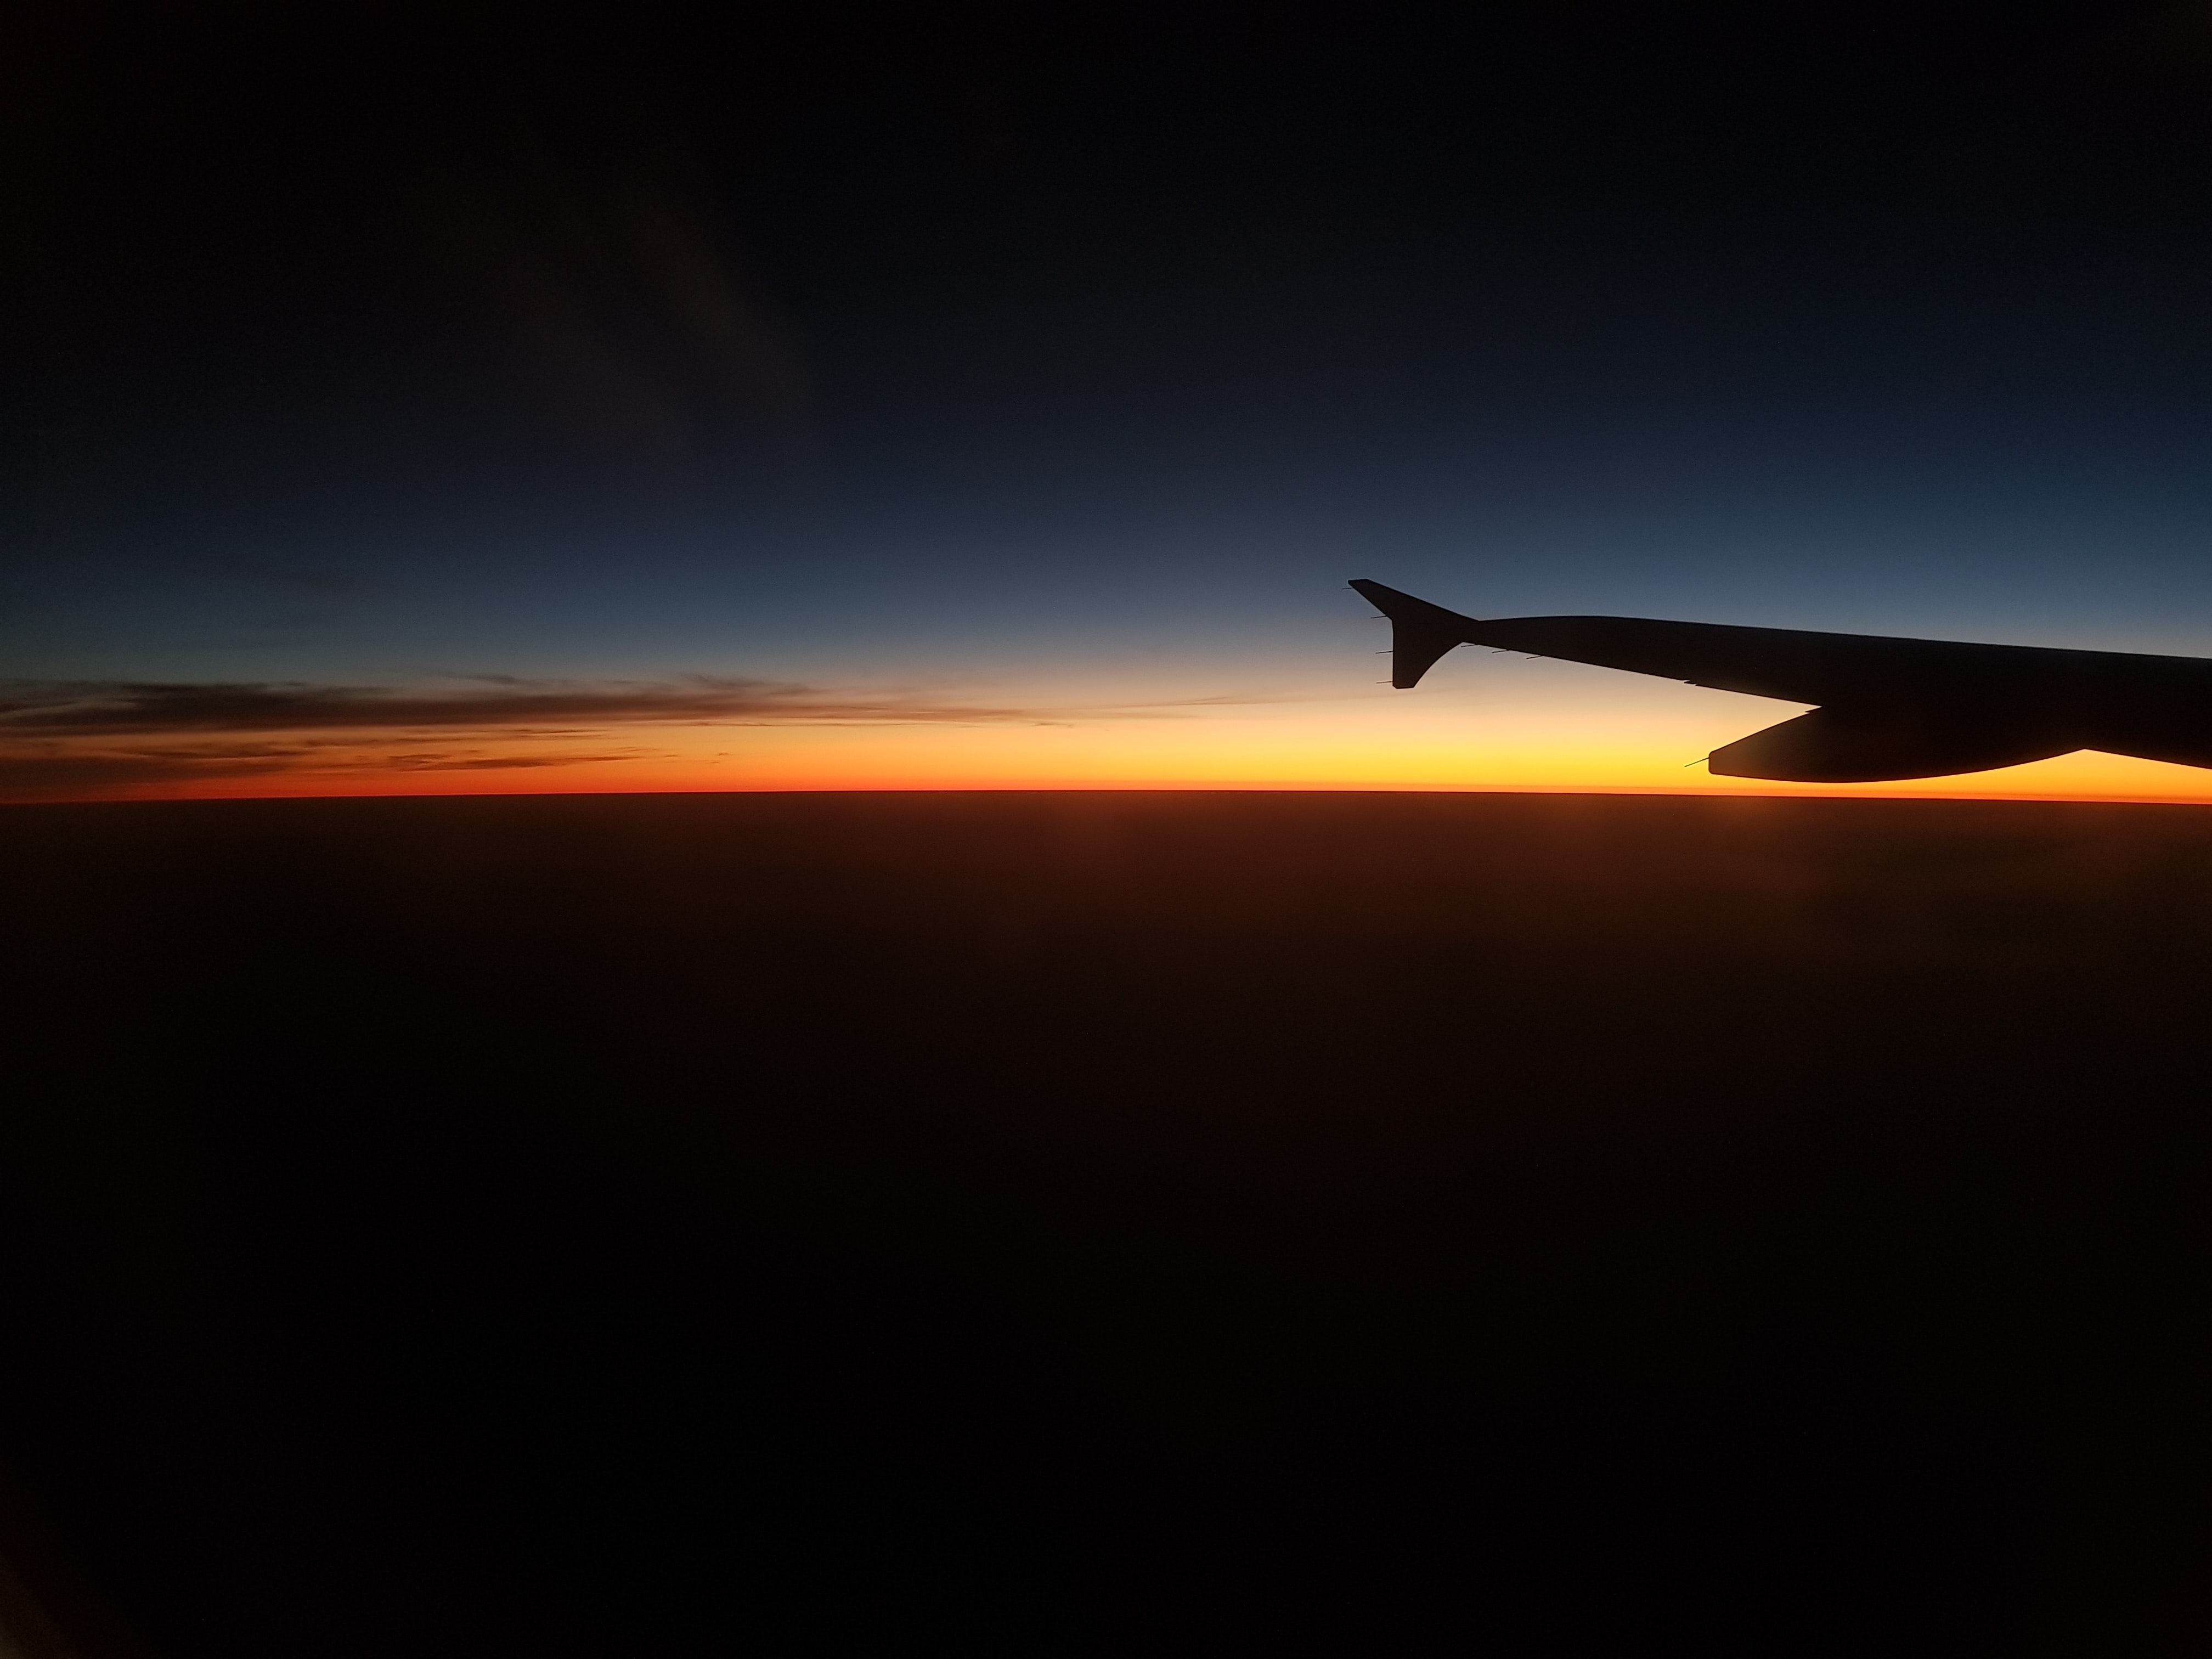 silhouette photograph of plane wing during golden hour